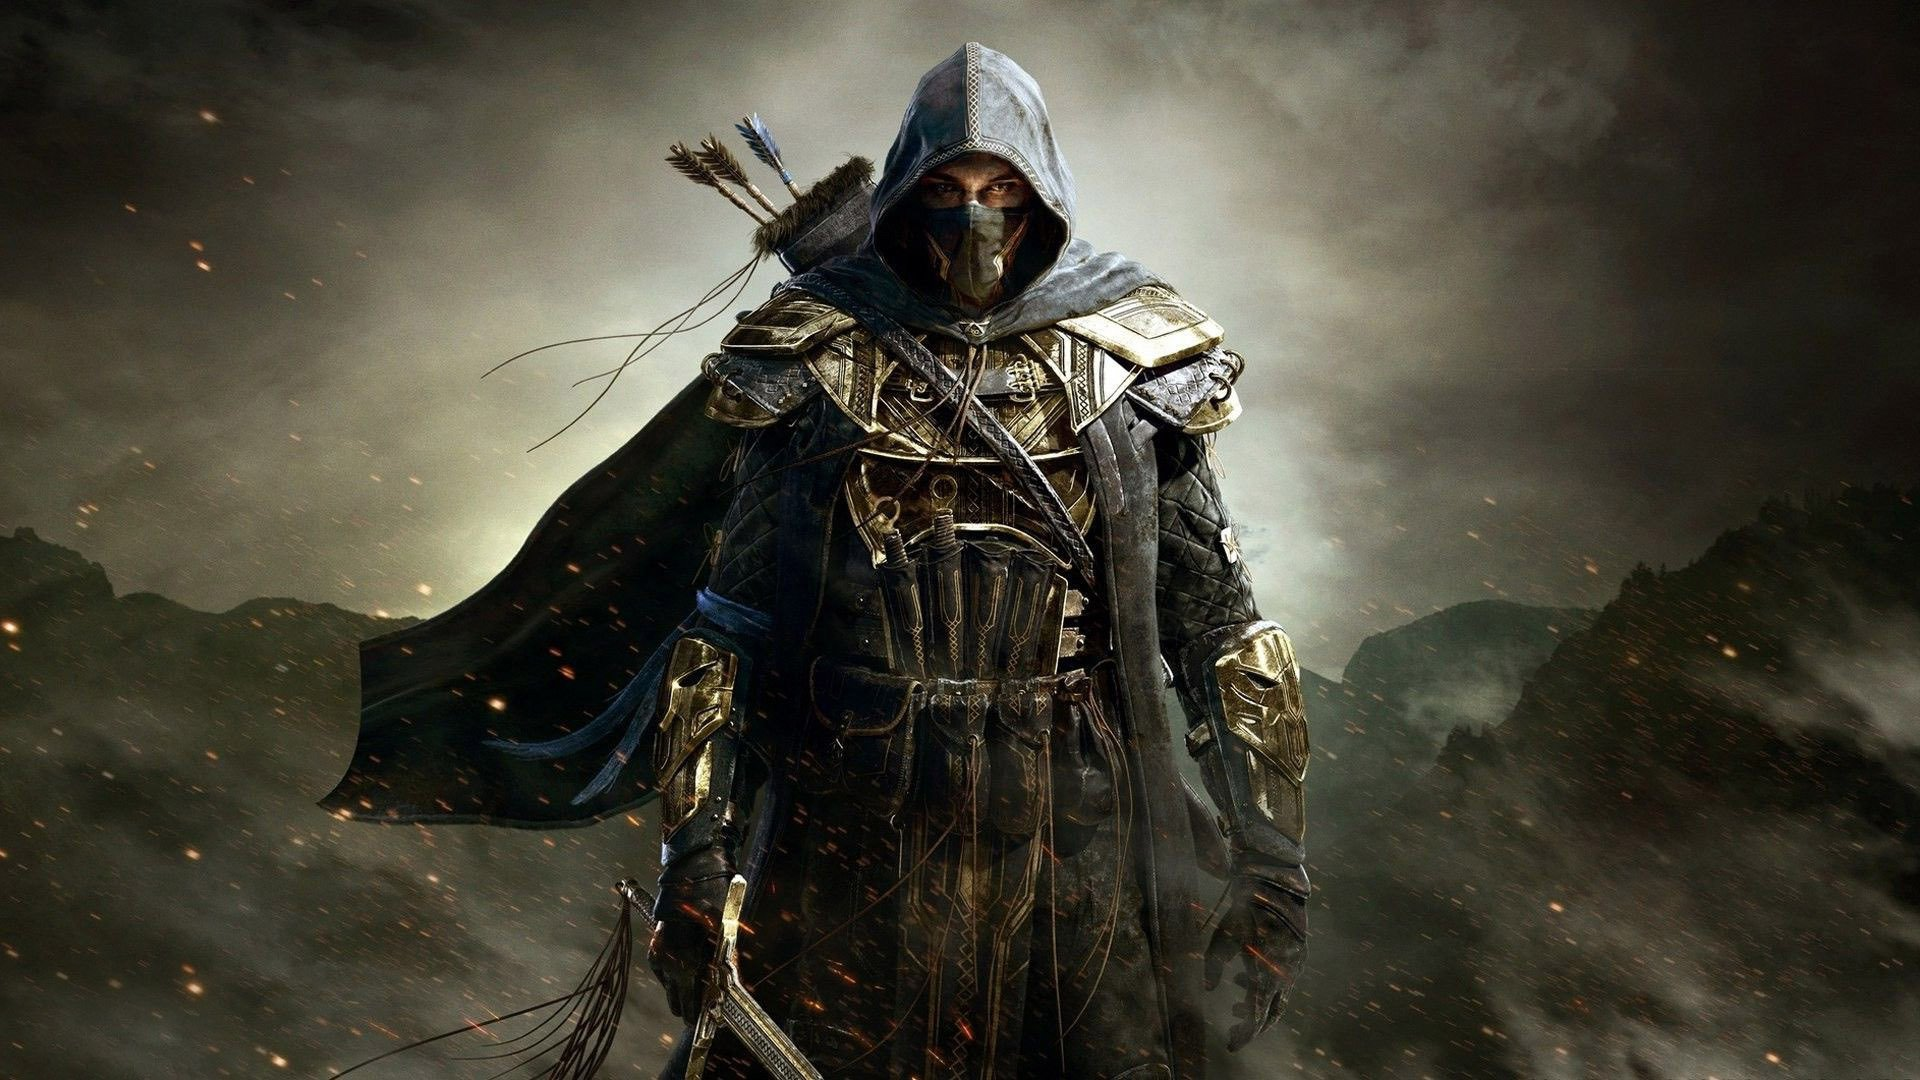 Free Download The Elder Scrolls Online Wallpaper 2 1920x1080 For